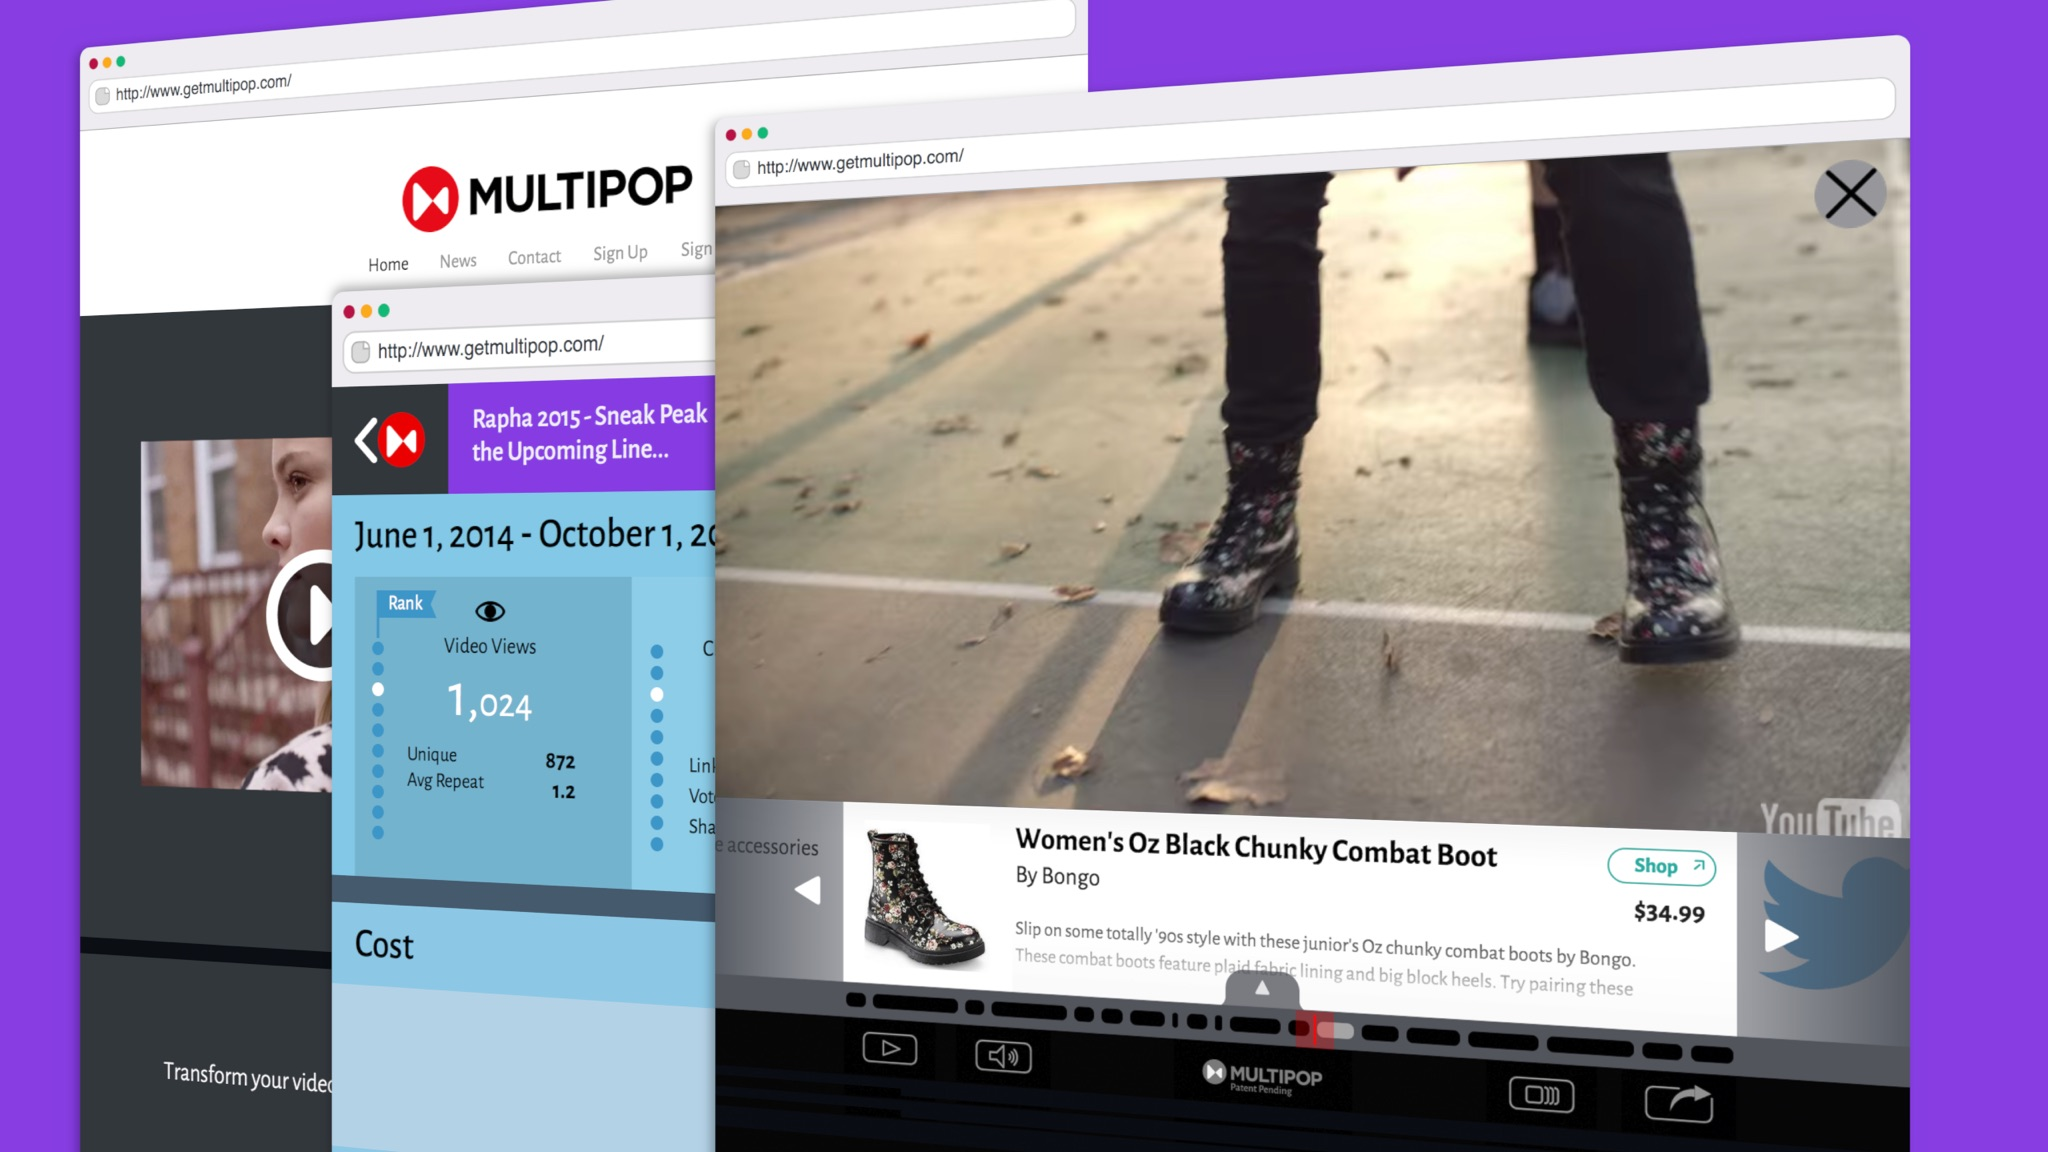 Multipop transforms video with interactive content.